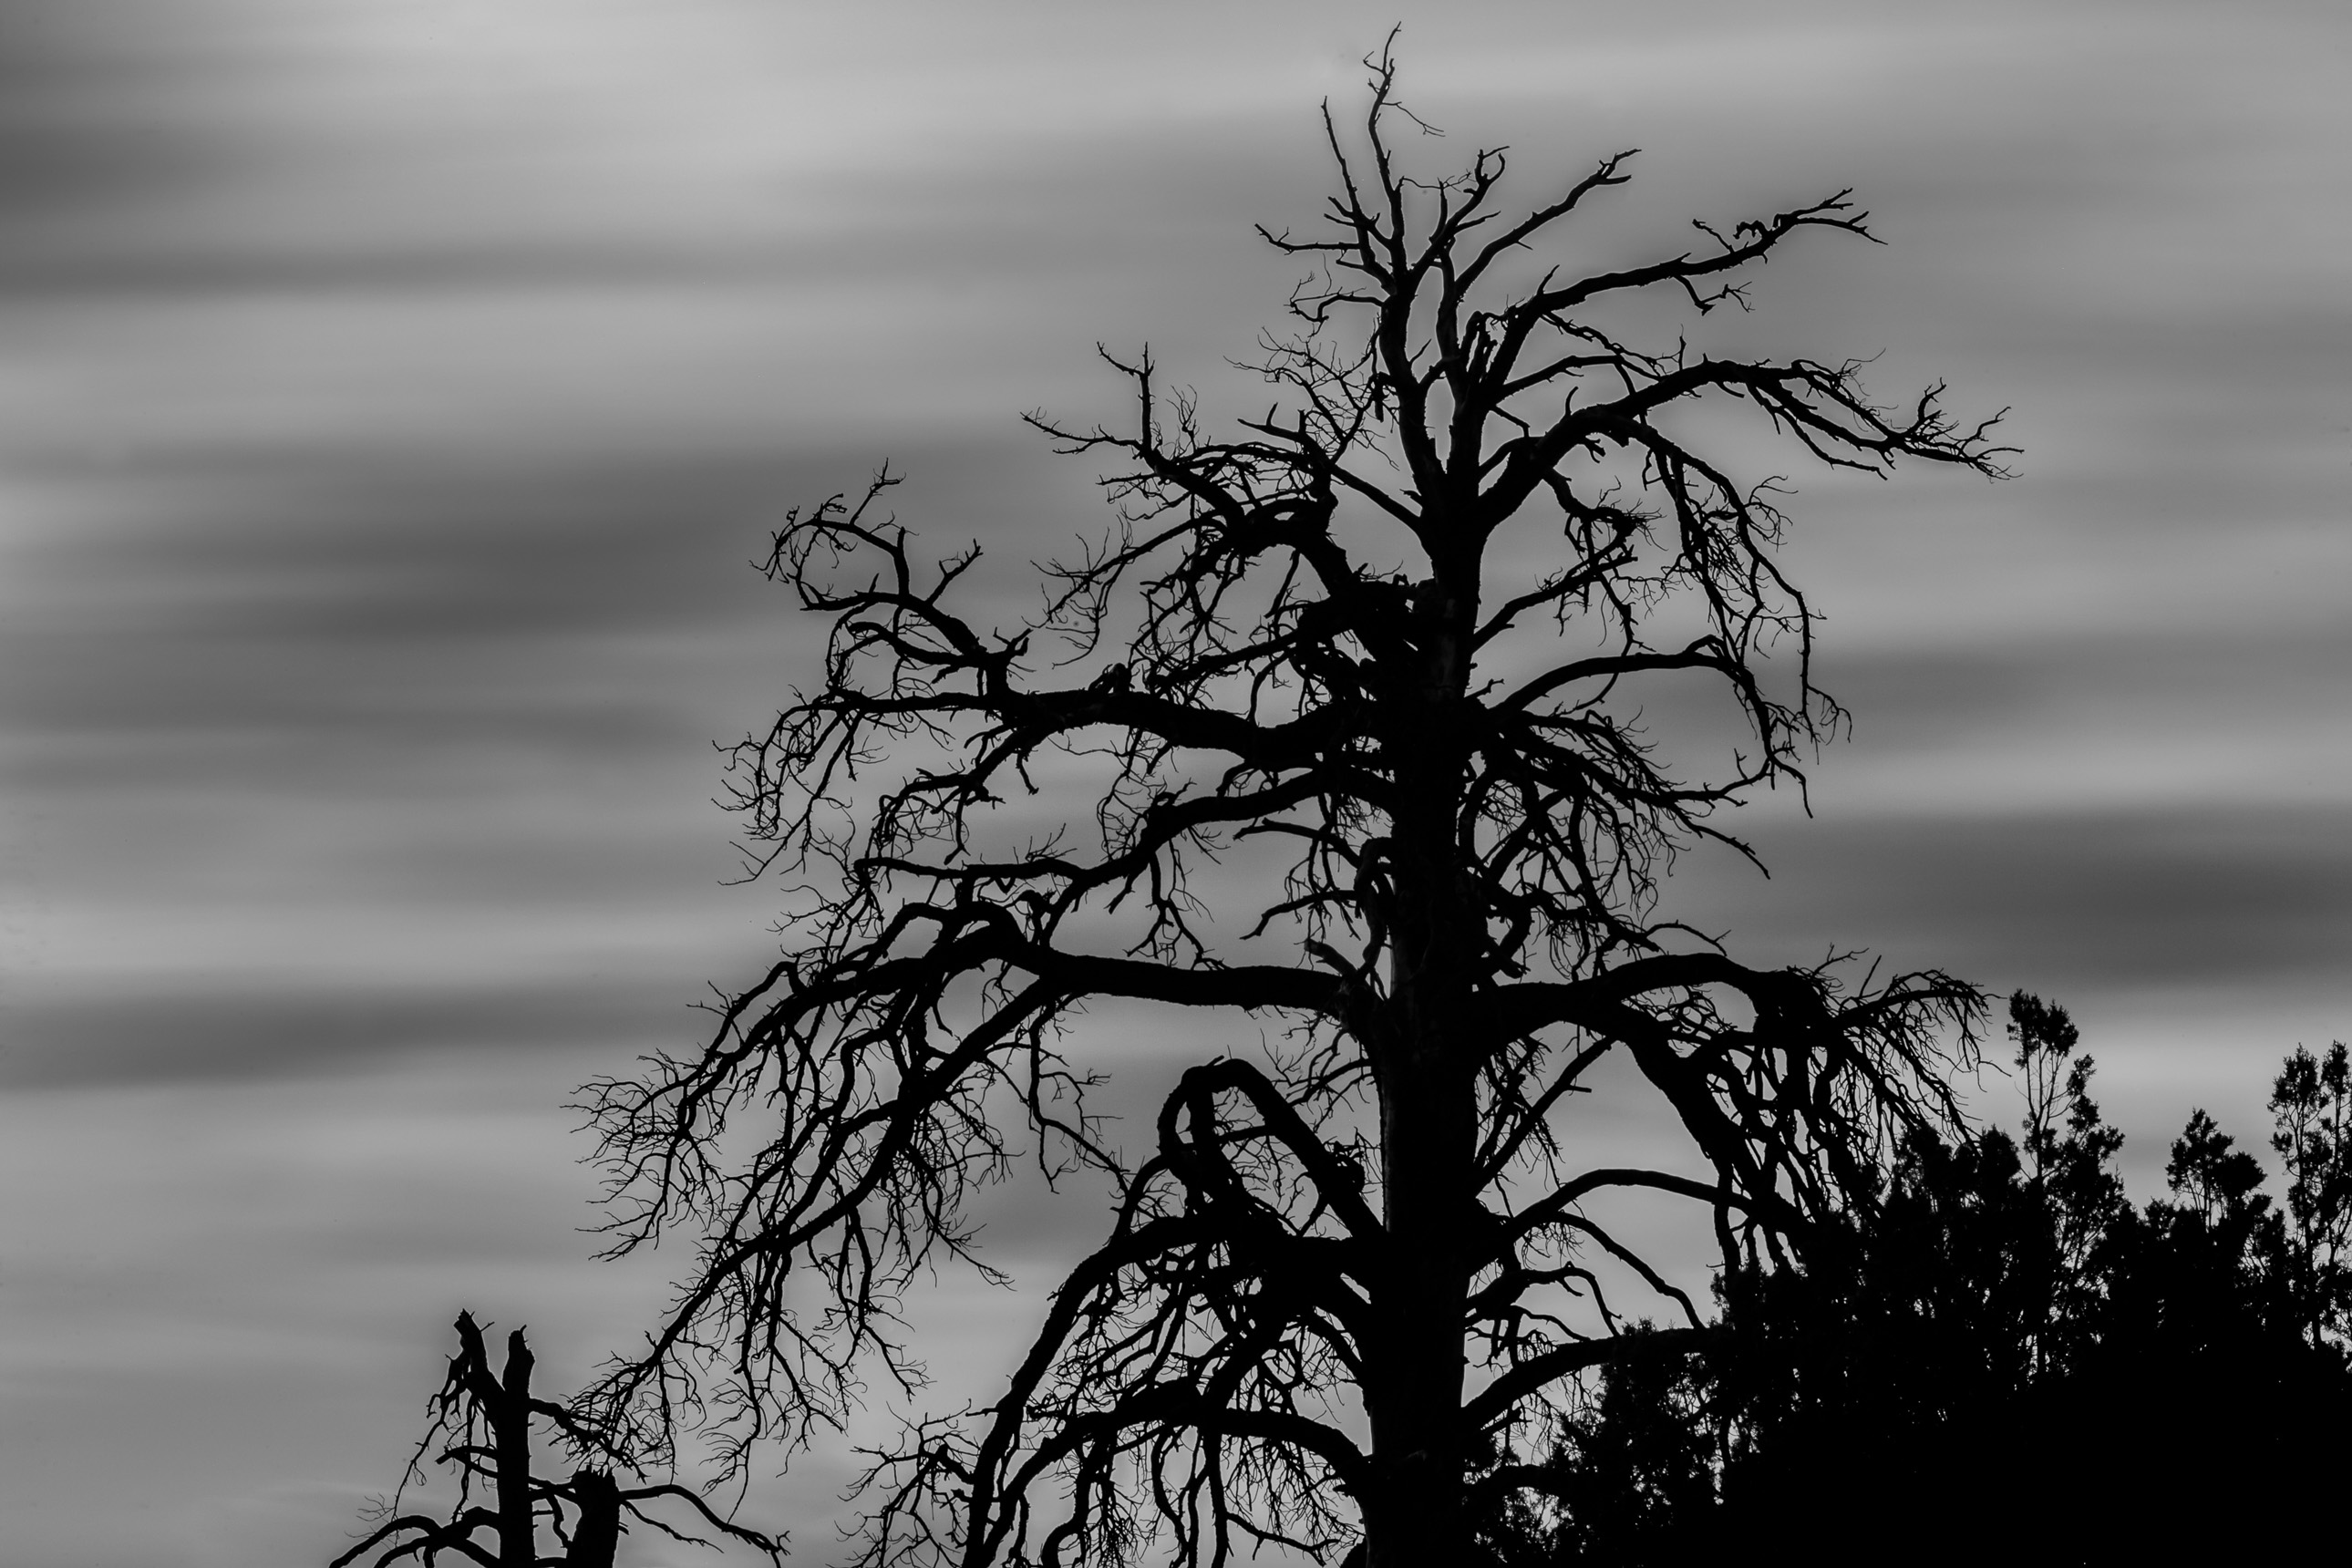 Dead tree silhouette near Ashurst Lake